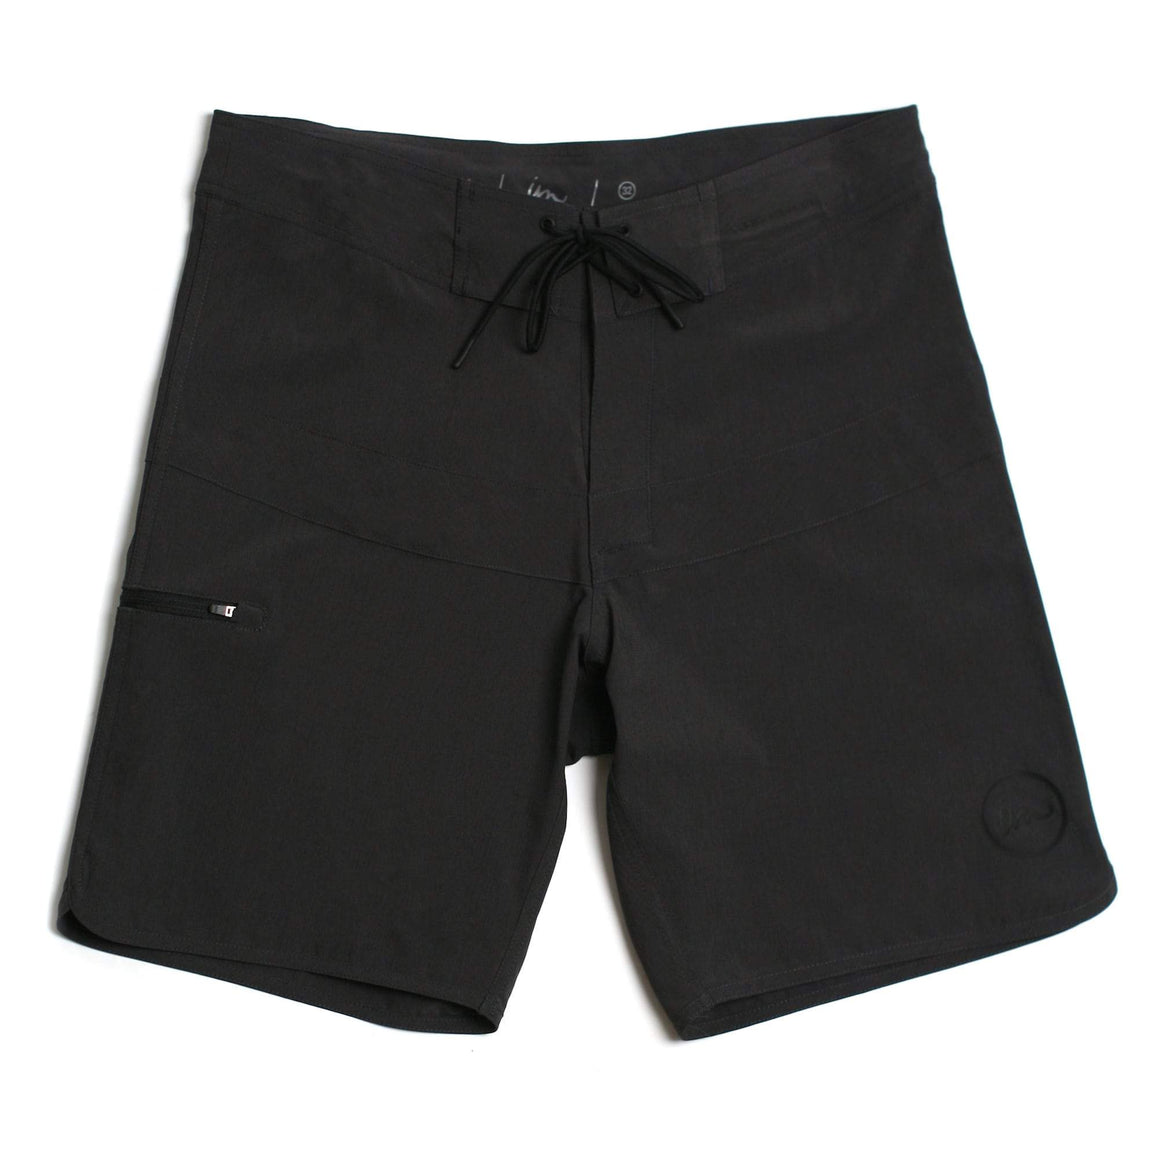 Imperial Motion Hayworth Minimalist Boardshort - Double Black